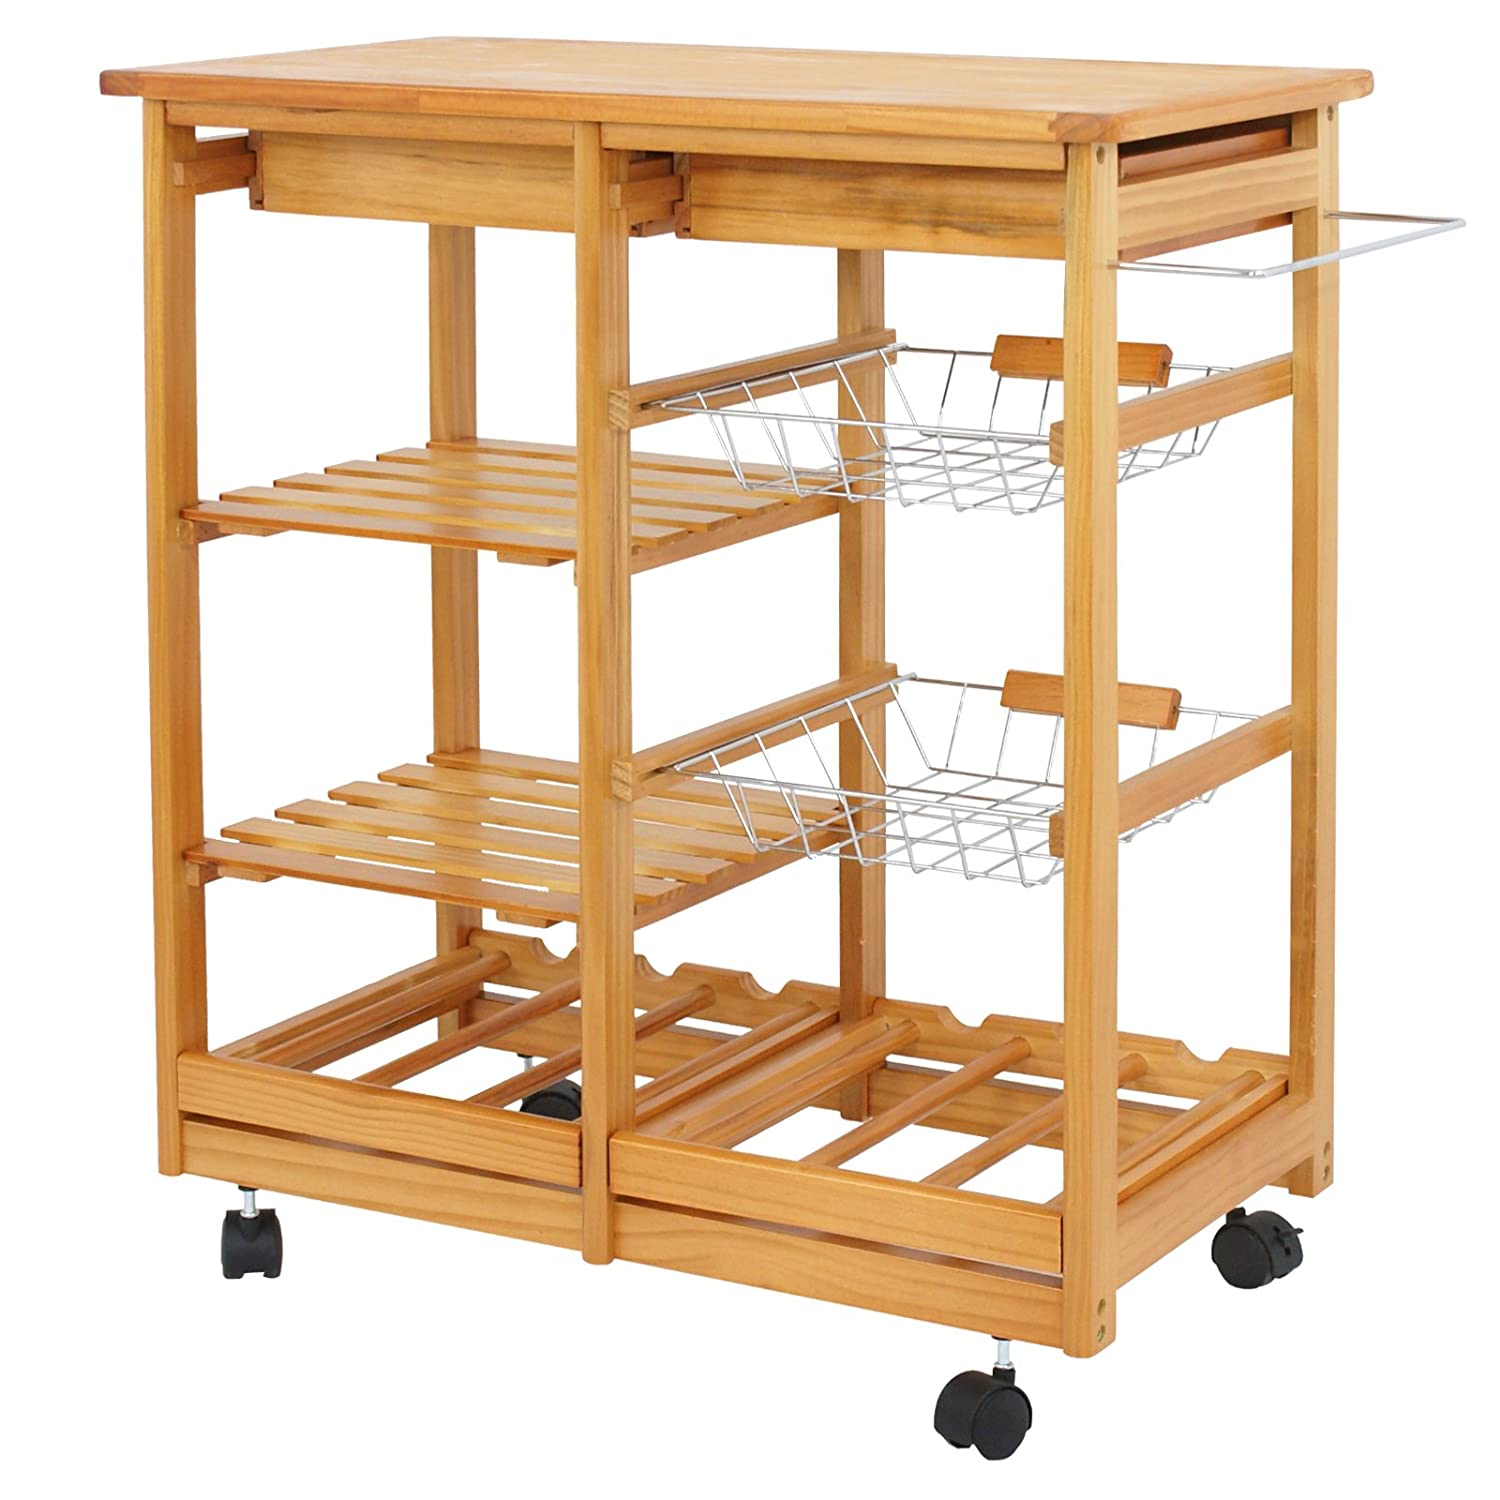 ZENY 4-Shelf Kitchen Storage Island Cart Rack Wood Dining Trolley w Drawers Basket Stand Home Kitchen Shelves and Organizer w Wheels